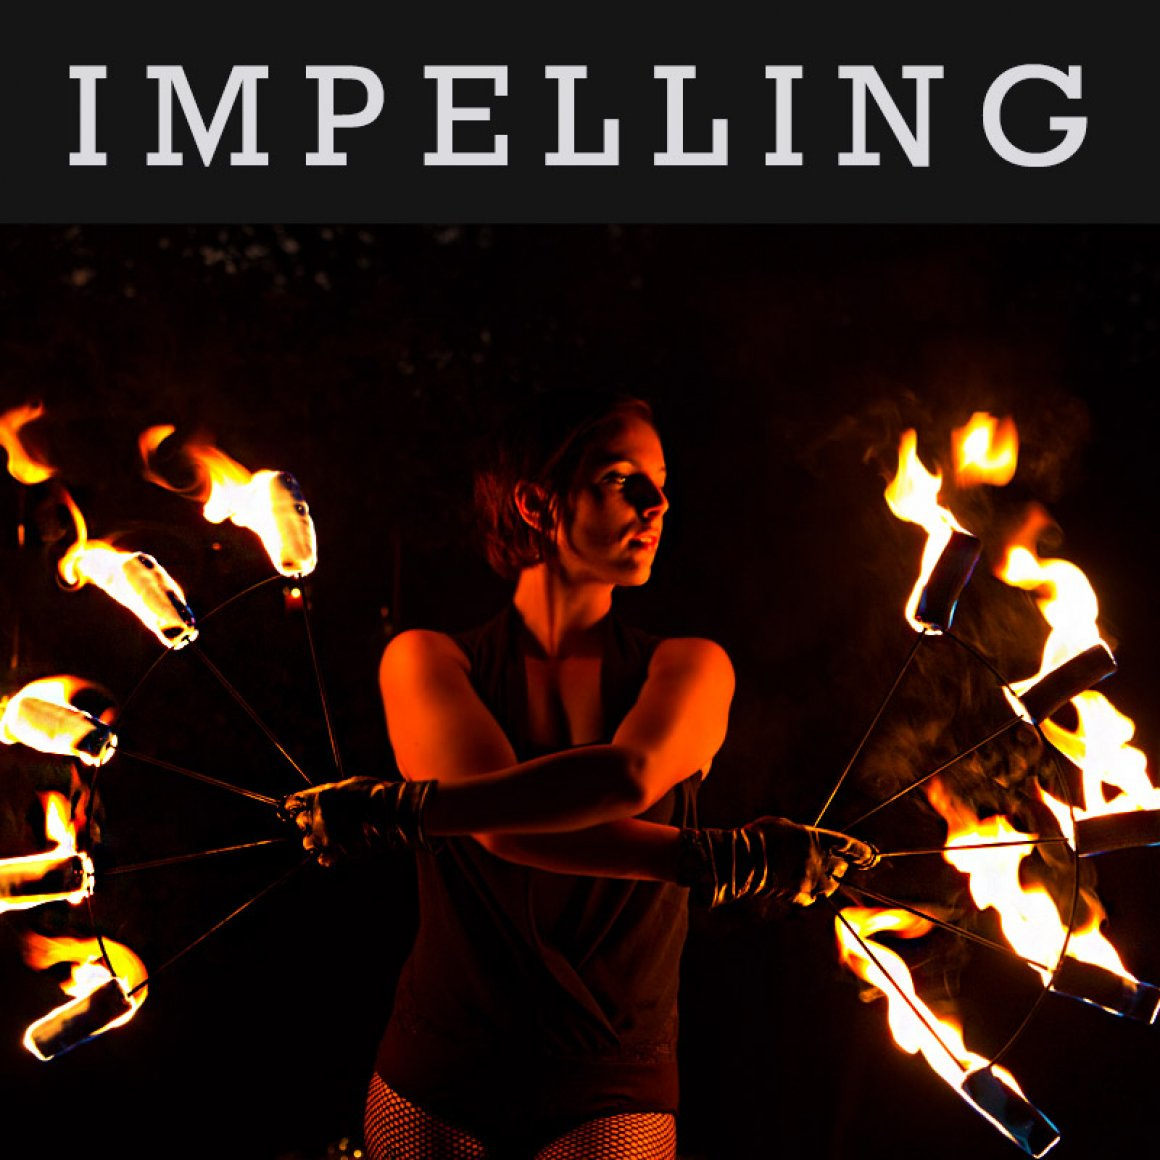 IMPELLING